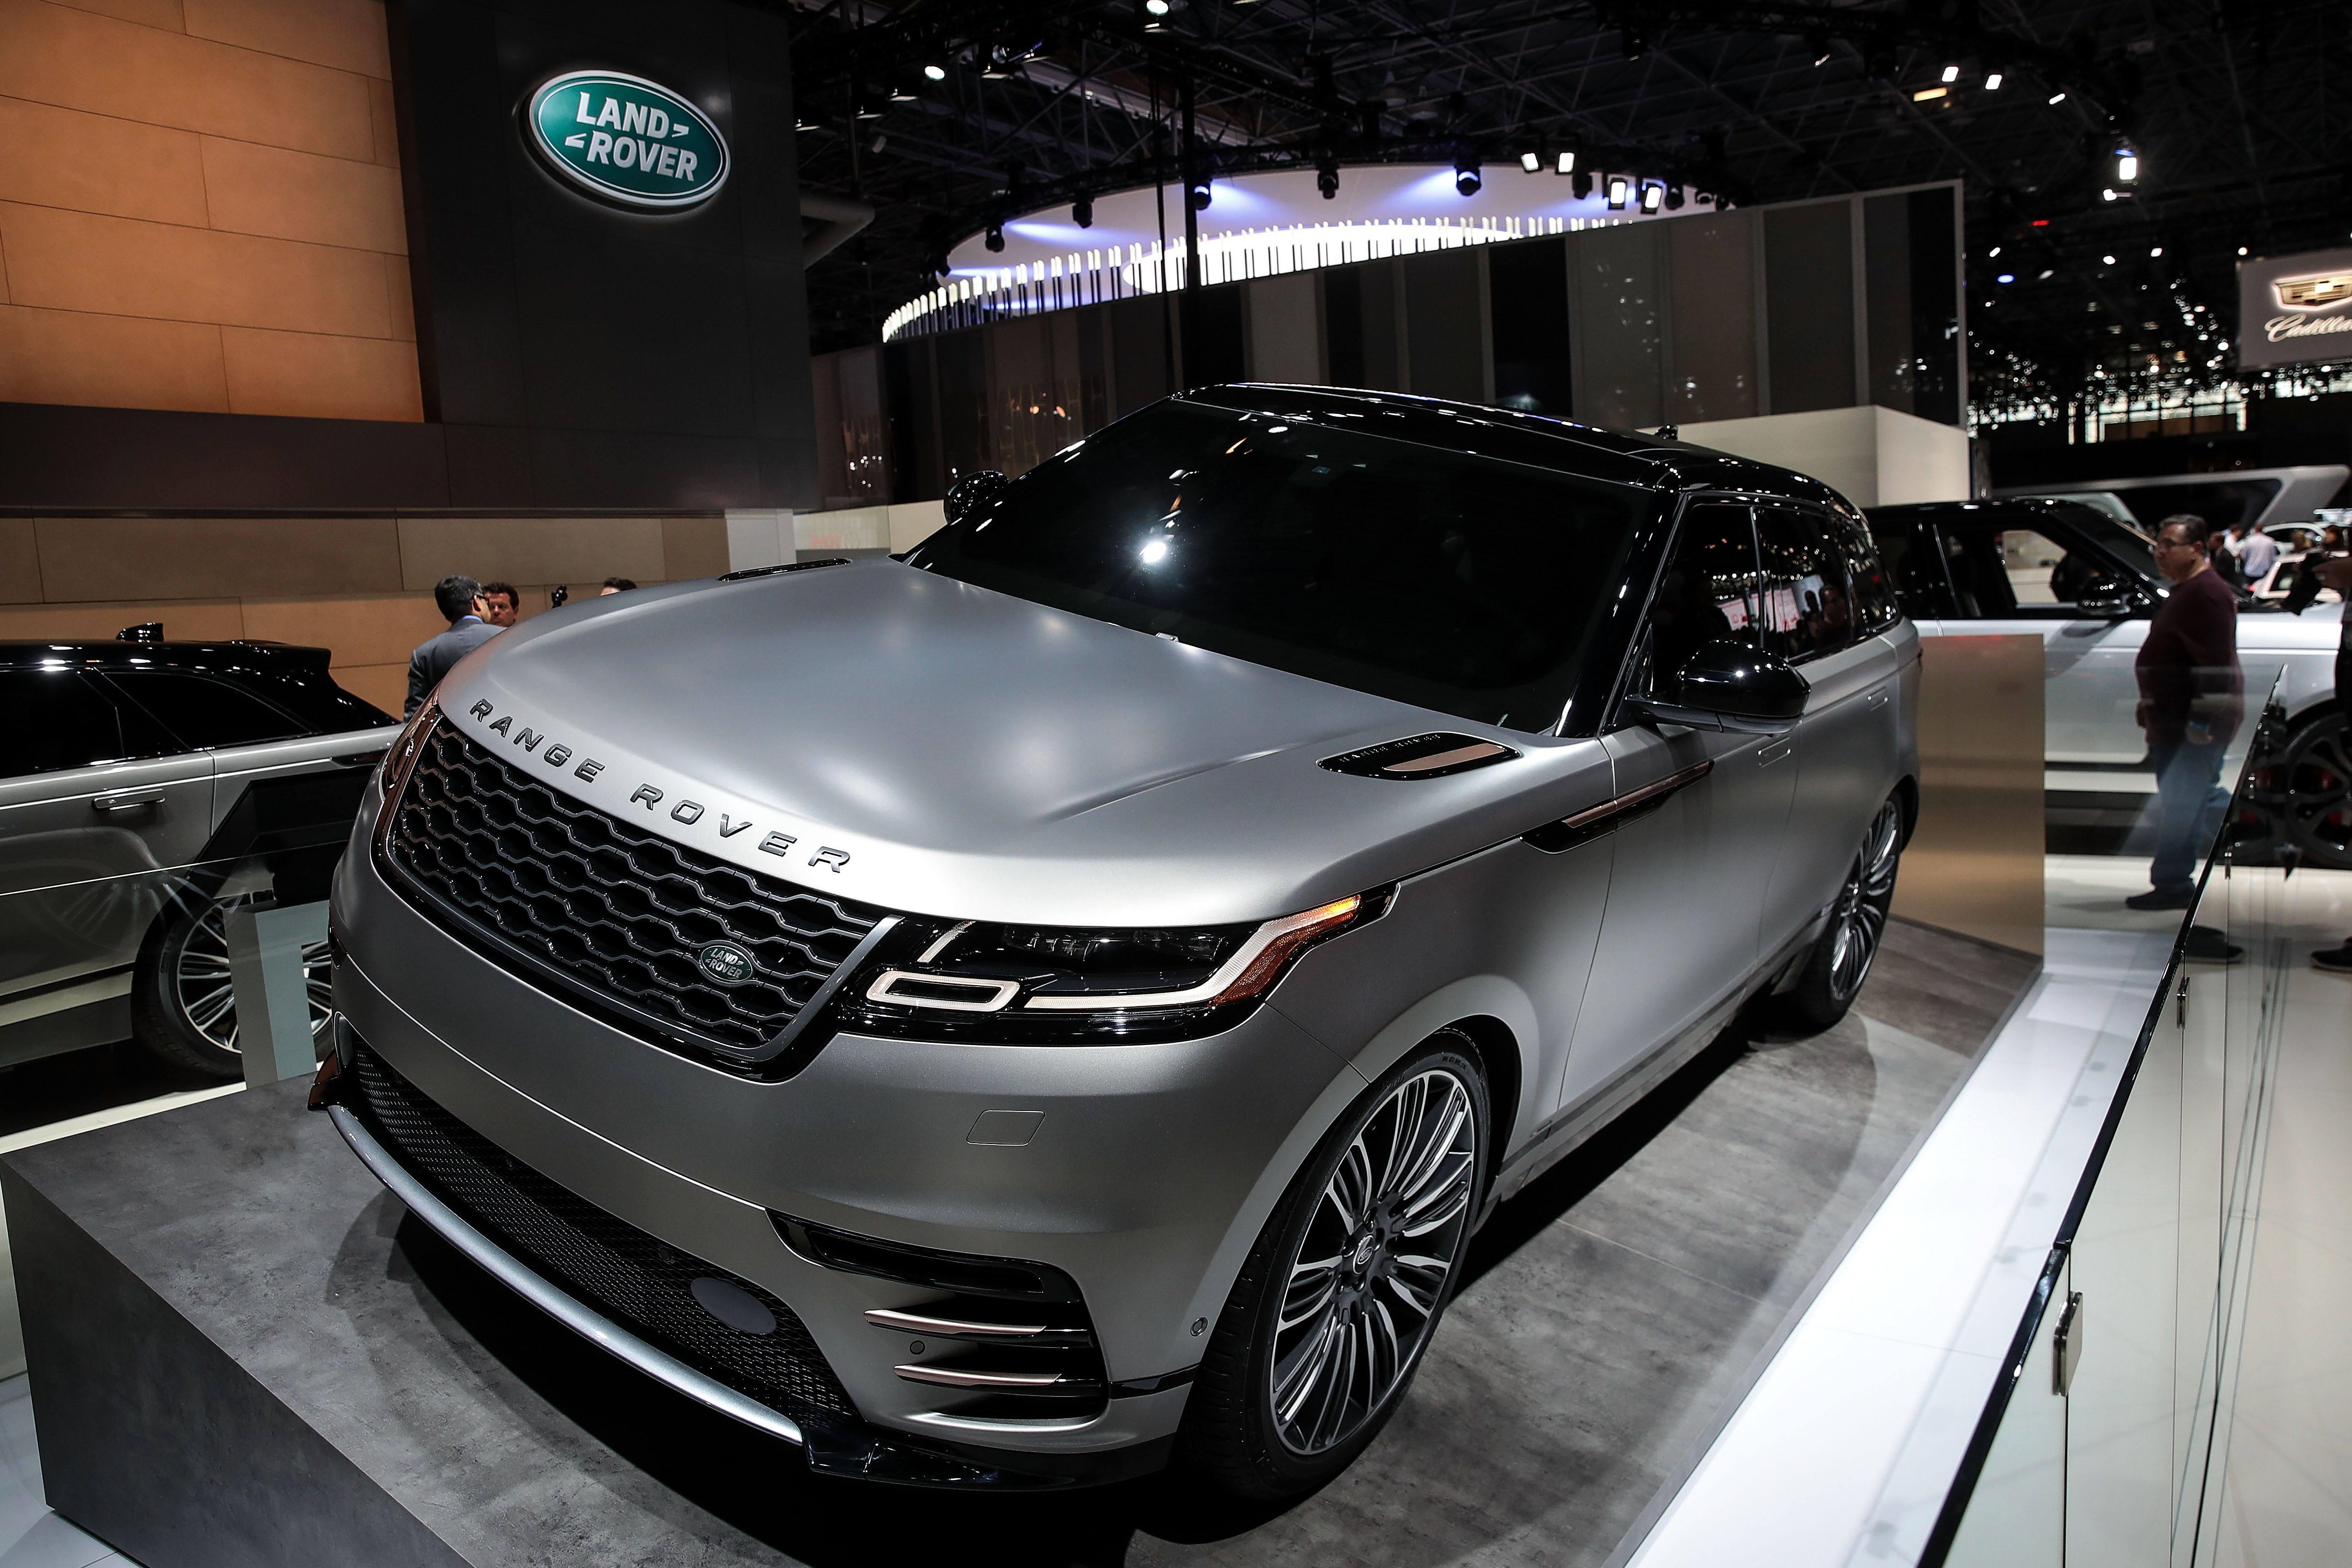 Jaguar Land Rover Has Plans For A New Model Line Called Road Rover